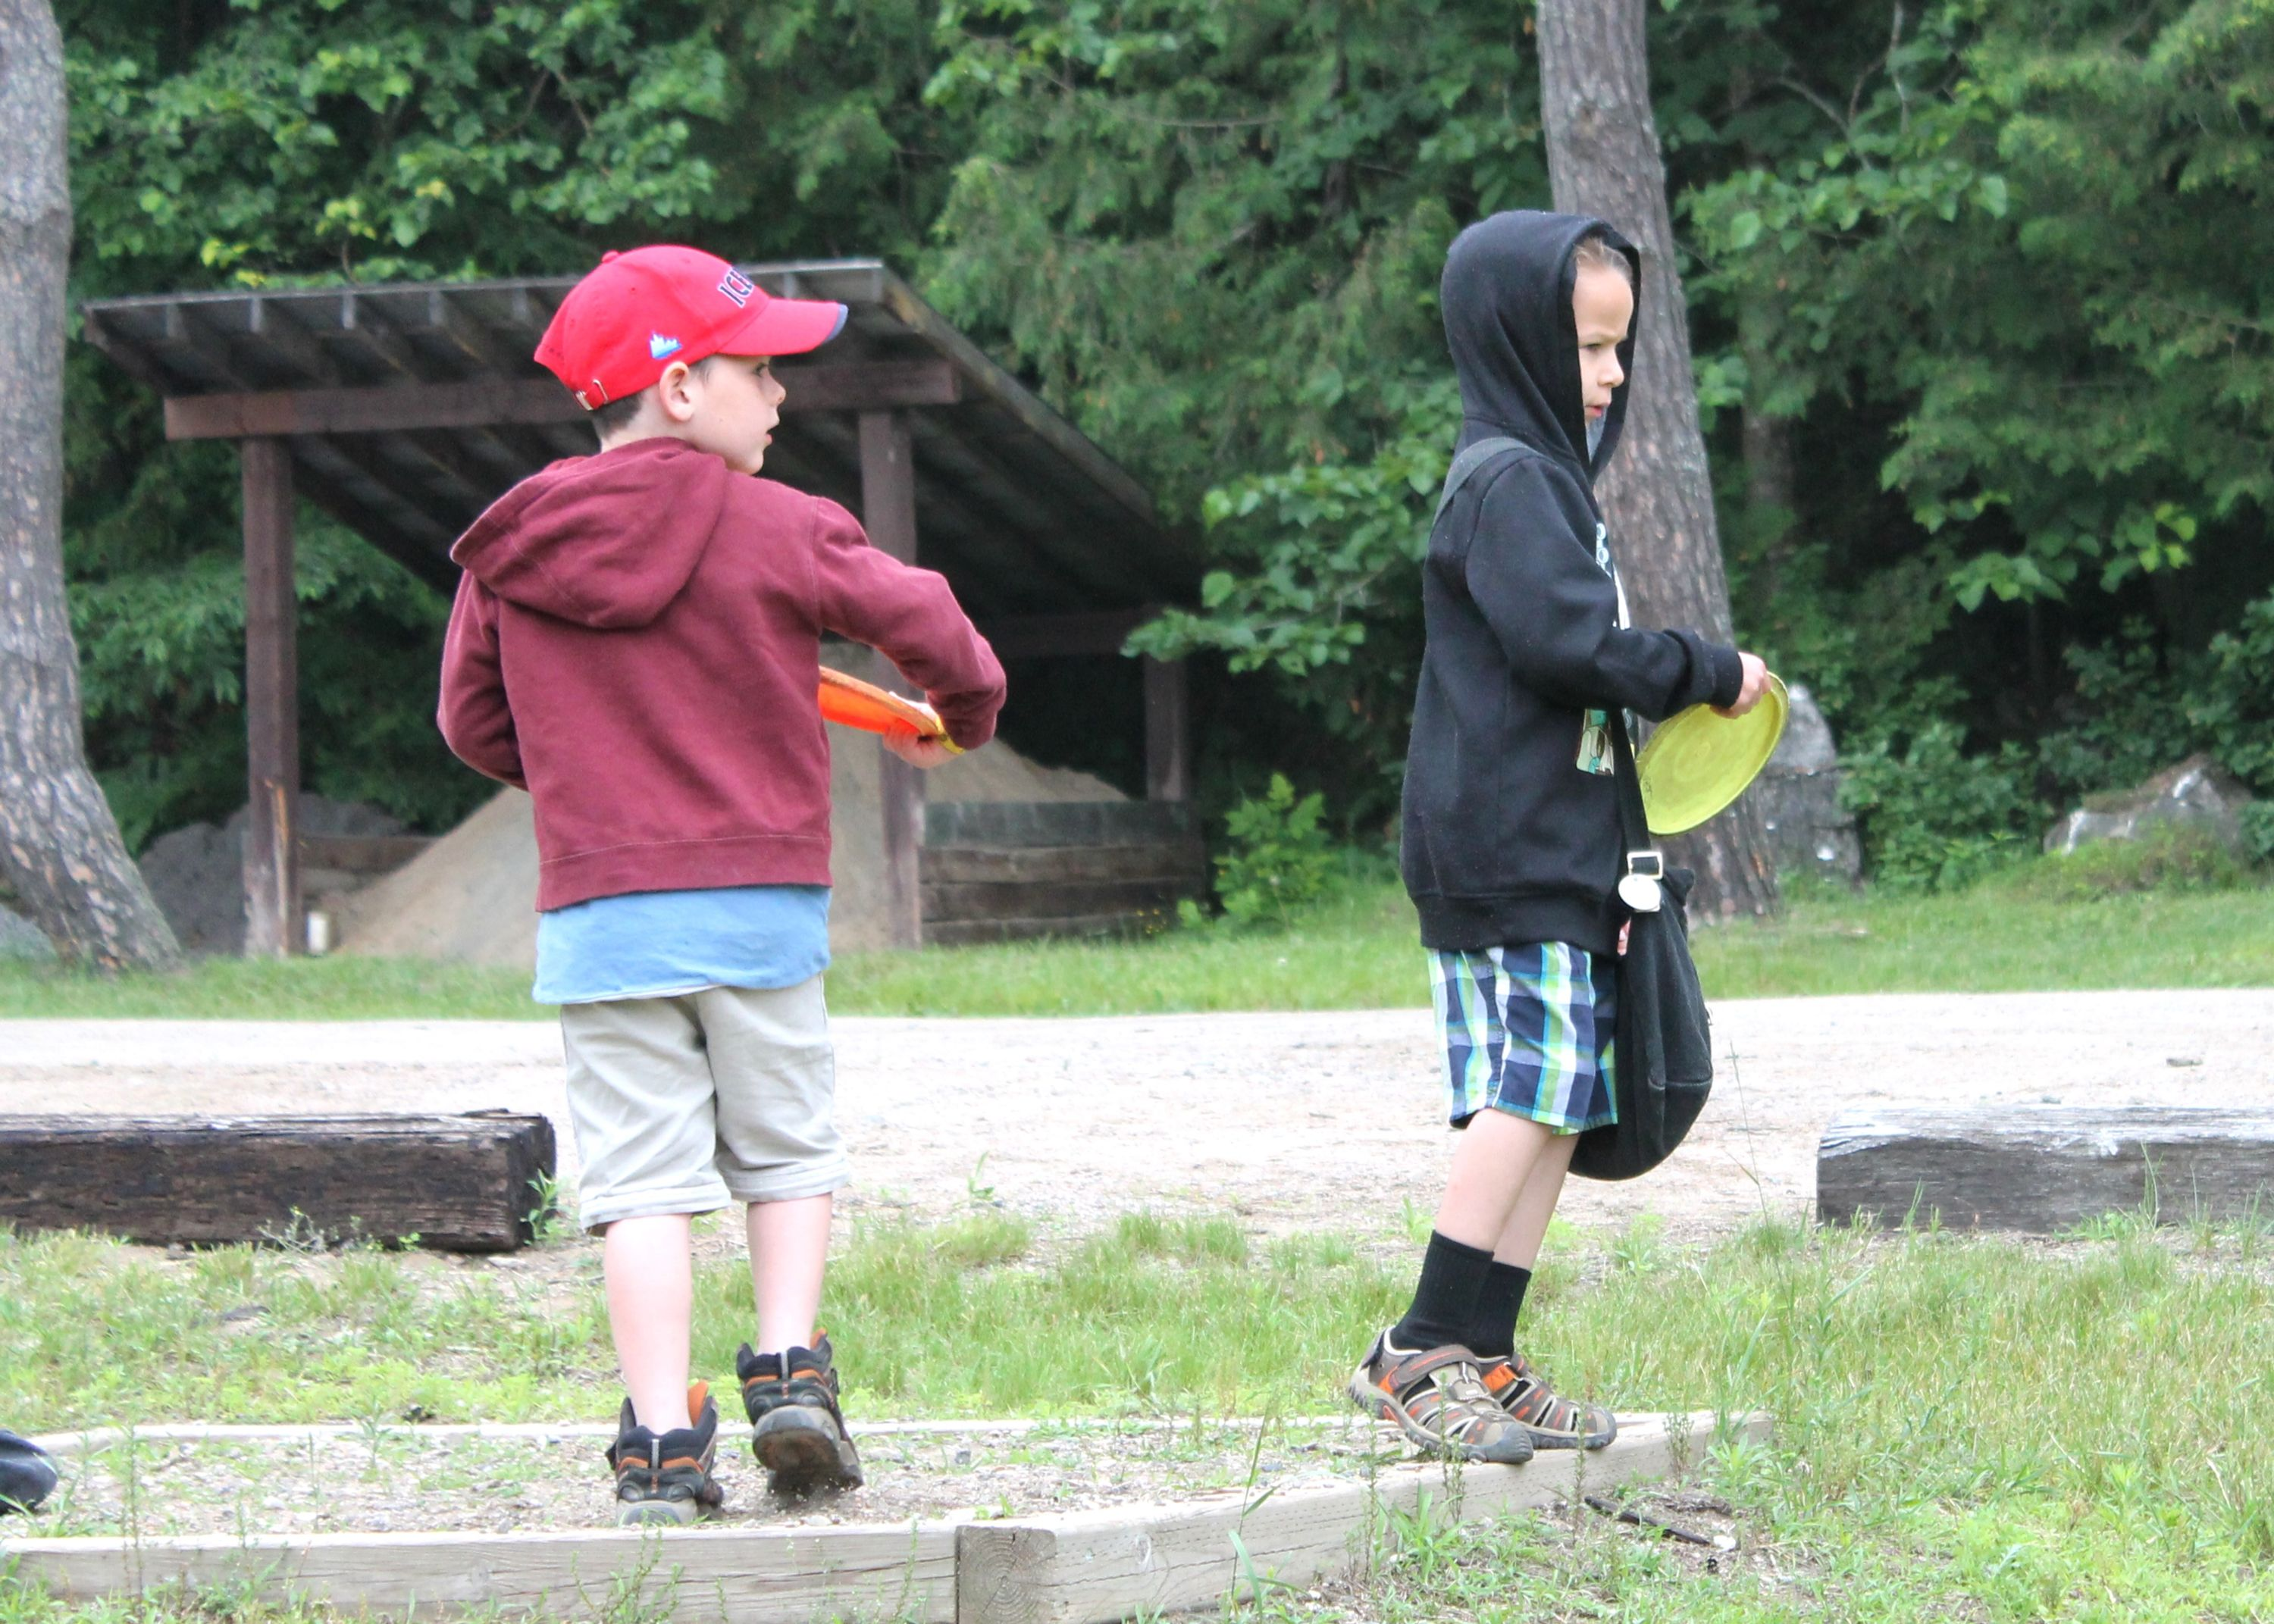 Campers playing disc golf outside at christian adventure summer camp in Northern Ontario